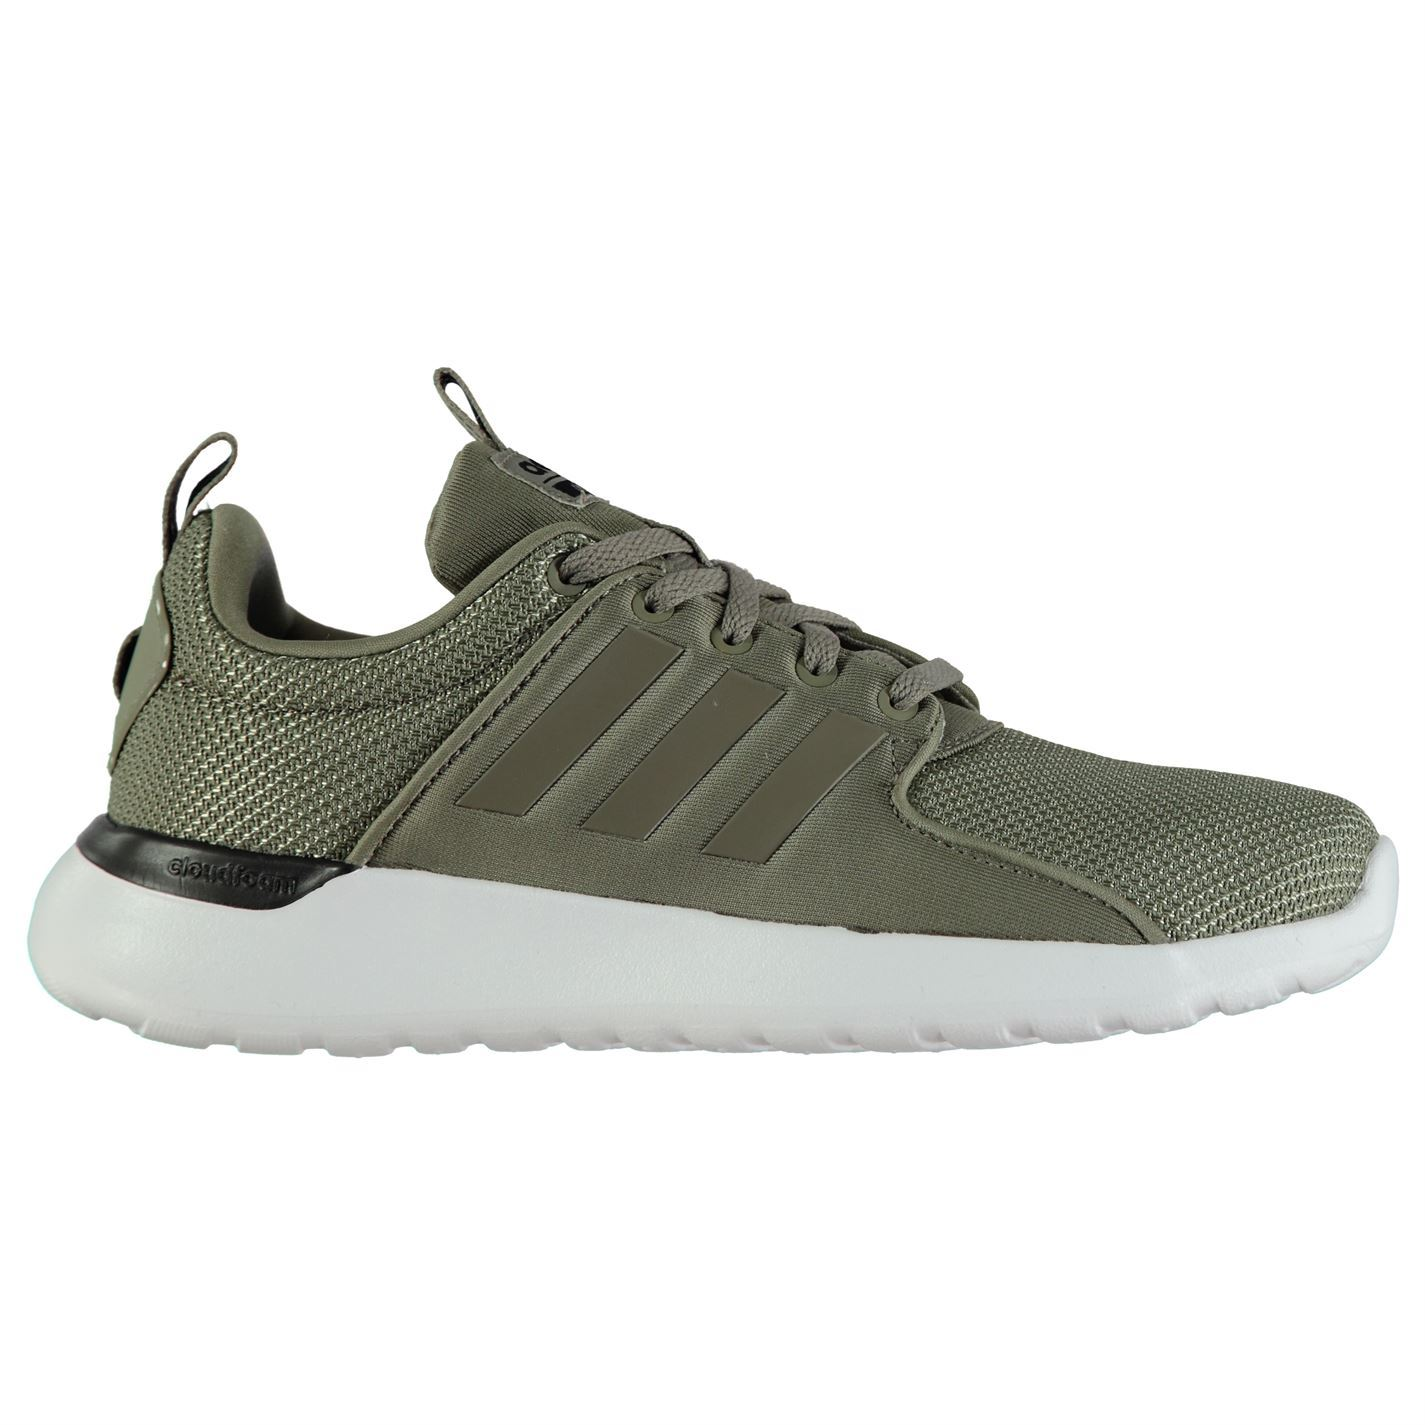 adidas Mens Cloudfoam Lite Up Racer Trainers Runners Lace Up Lite Pattern Stripe 7bfbbb